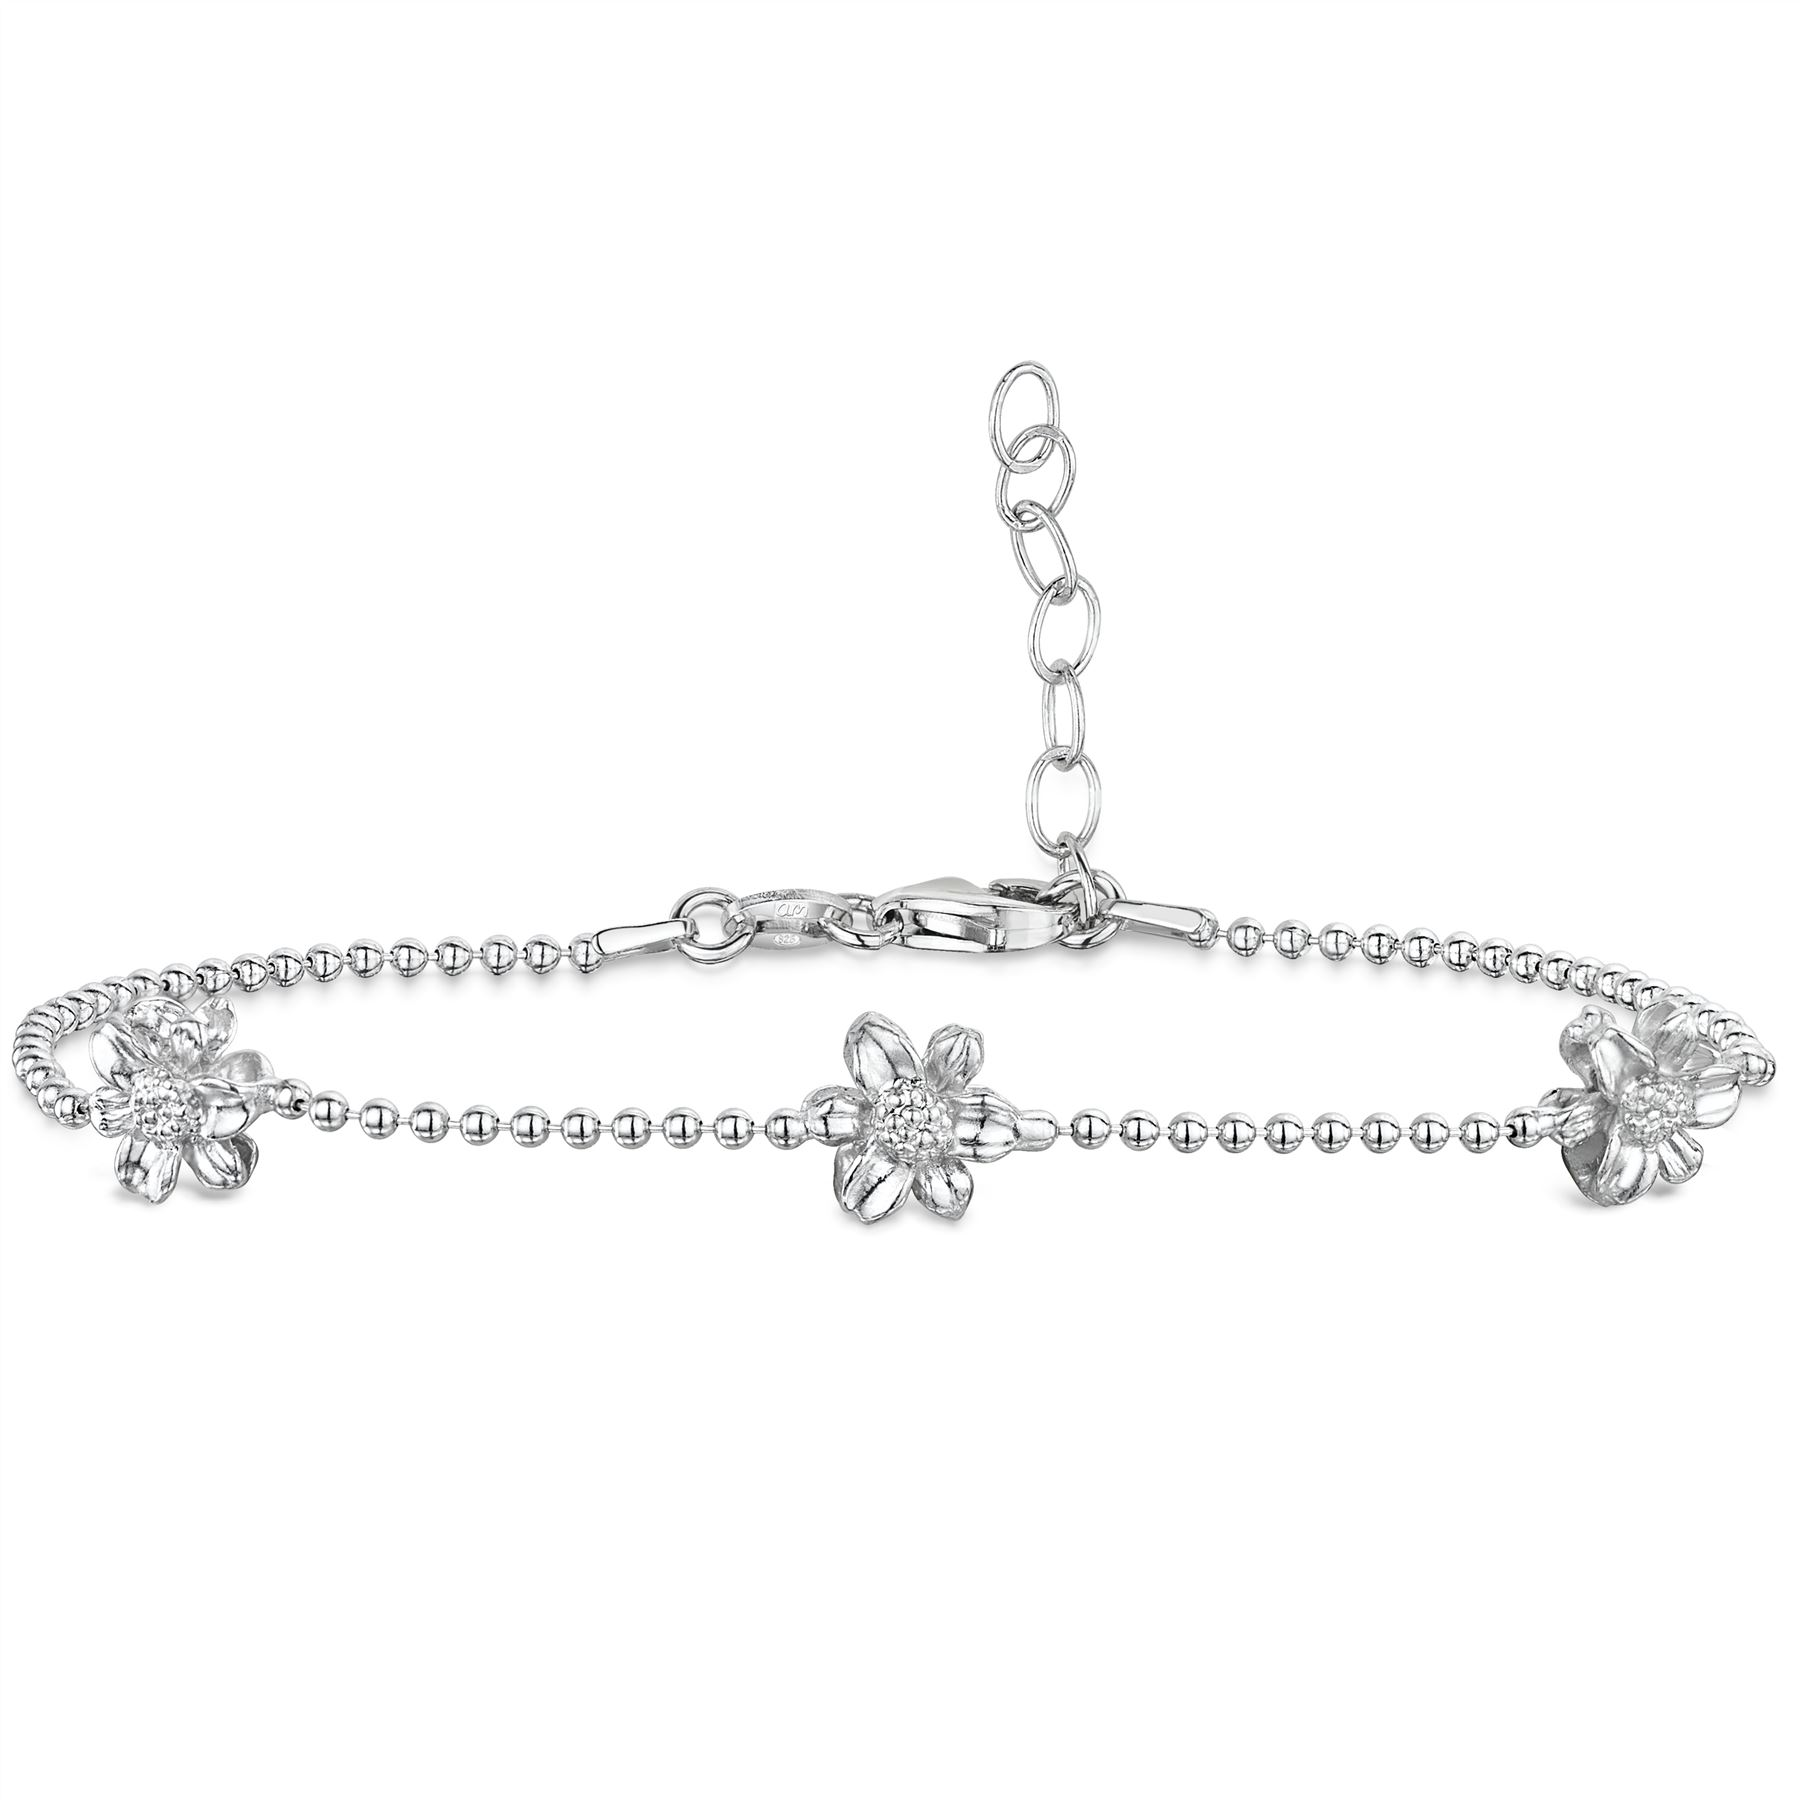 Amberta-Jewelry-925-Sterling-Silver-Adjustable-Anklet-for-Women-Made-in-Italy miniature 30